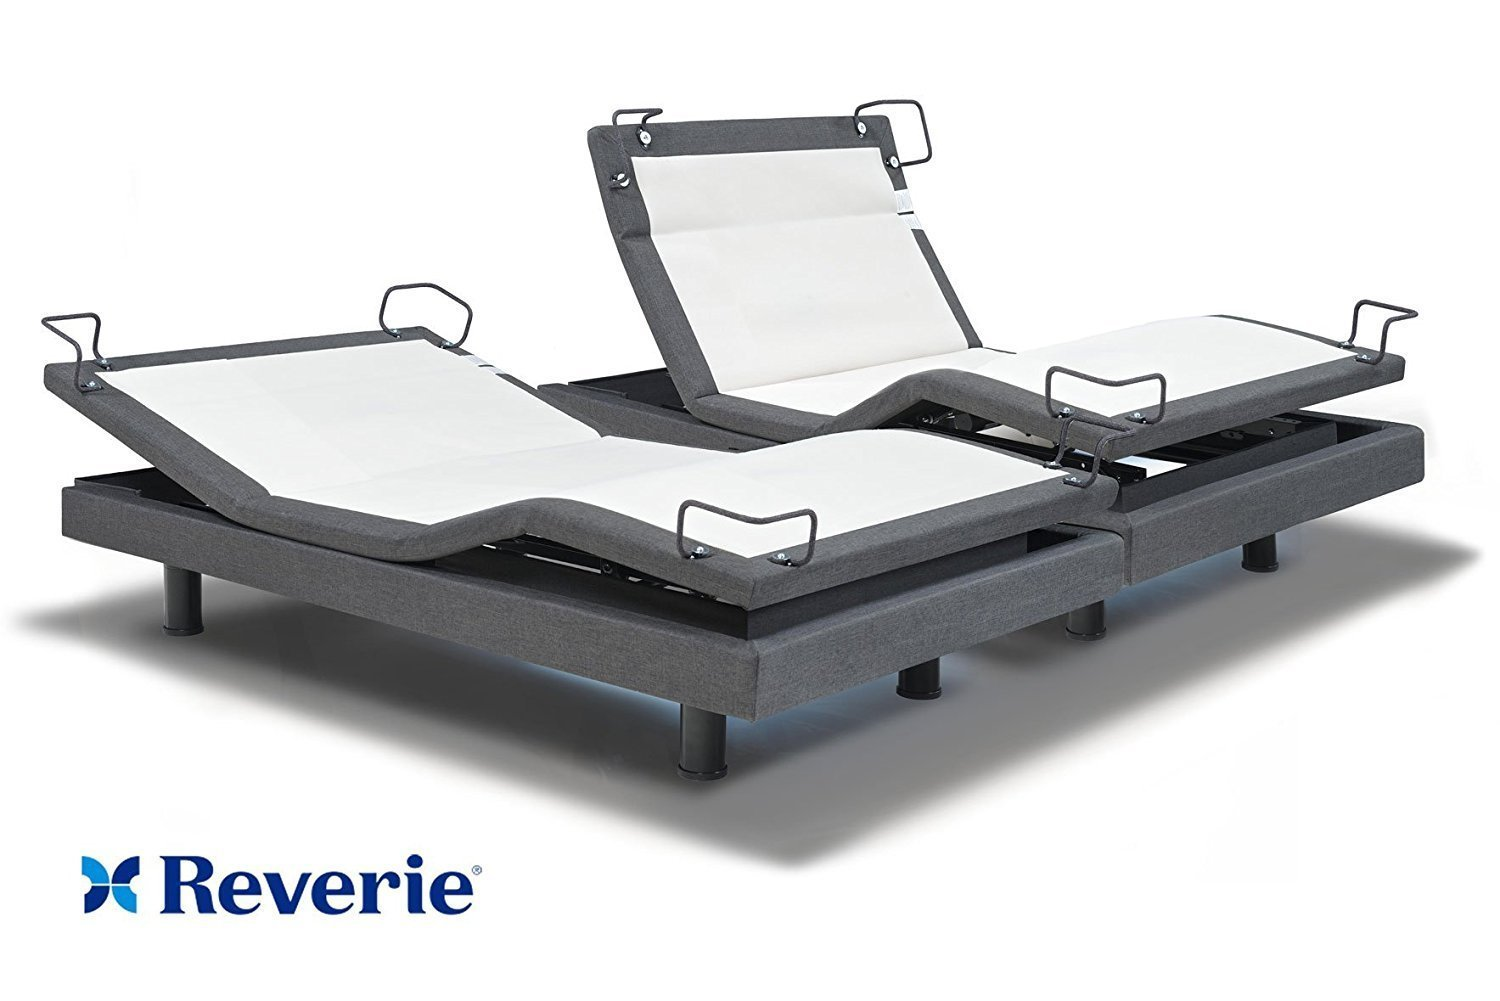 iDealBed Signature Reverie 8i Adjustable Bed Base, Wireless, Wall Hugger, High Definition Massage, Anti-Snore, USB Charge Ports, Night Light, Bluetooth, Split King by Reverie